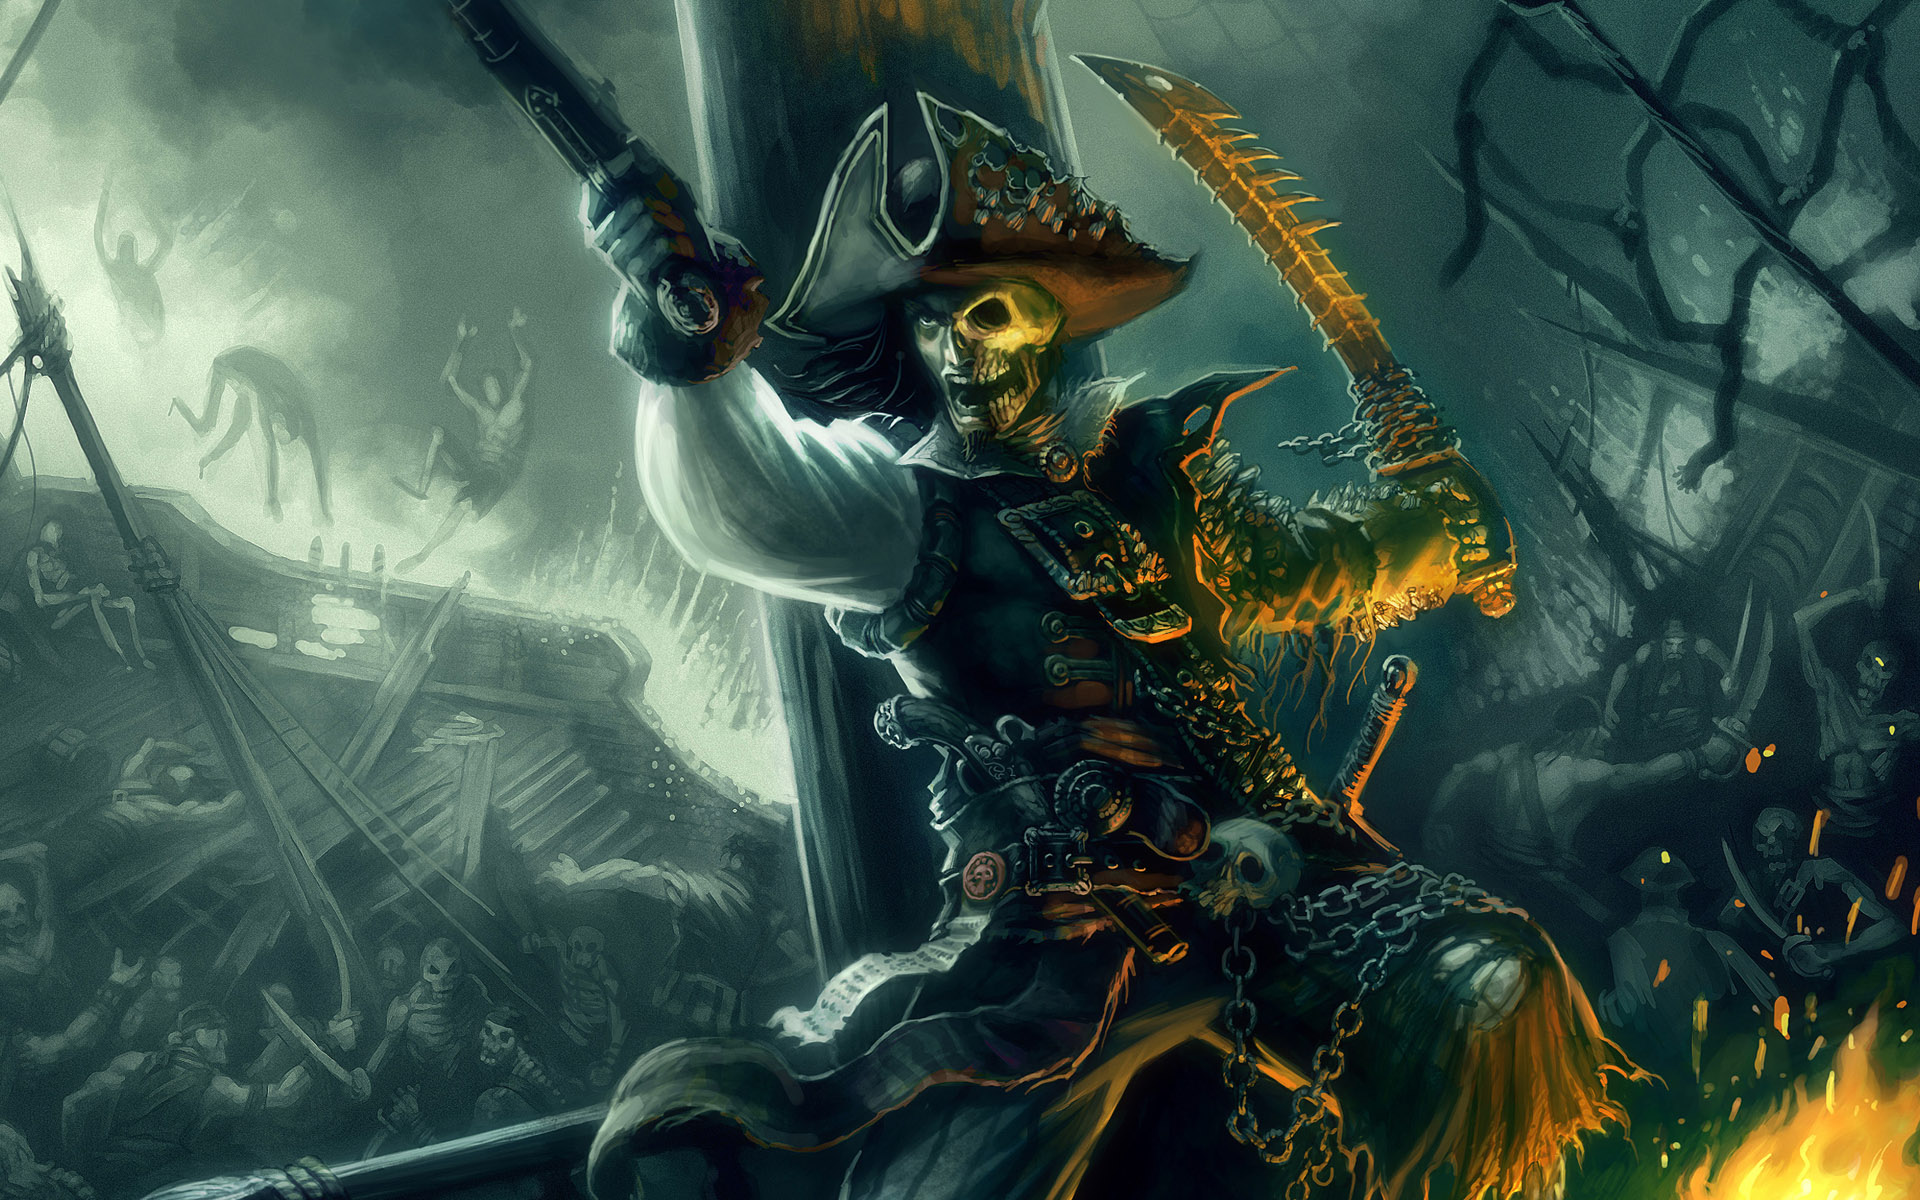 Drawn pirate undead The Build: Character Pirate The